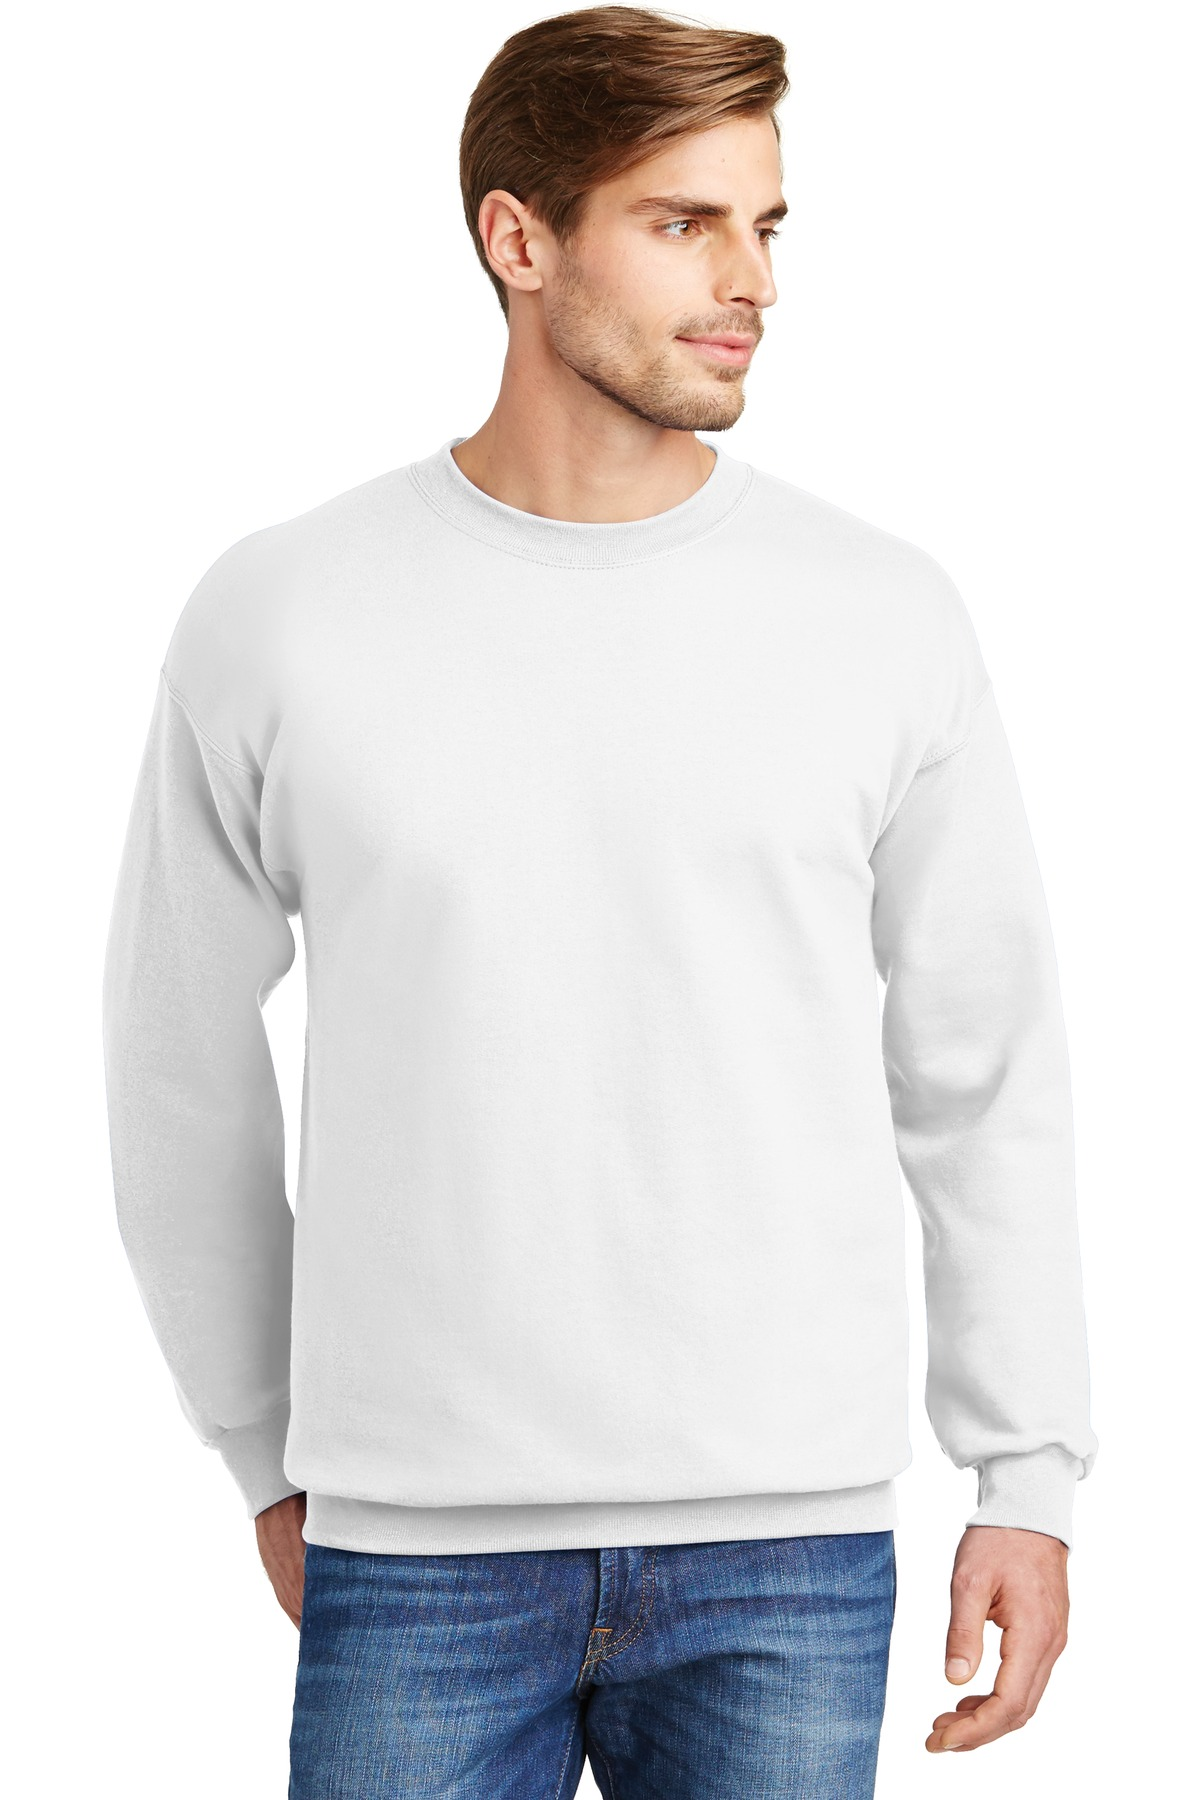 Hanes ®  Ultimate Cotton ®  - Crewneck Sweatshirt.  F260 - White